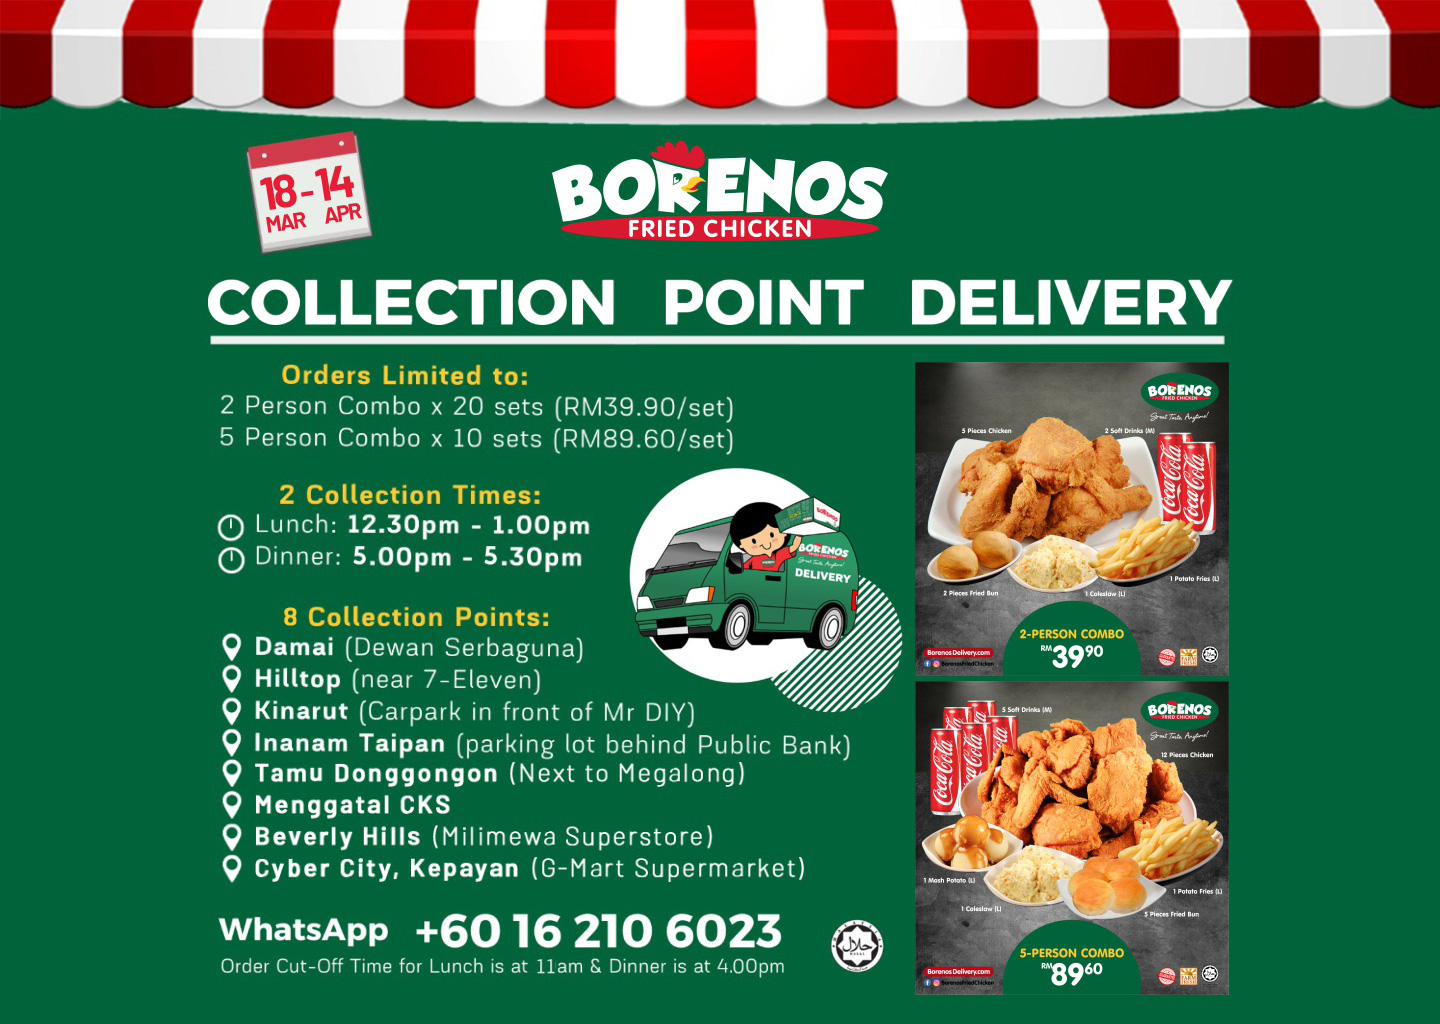 Borenos Collection Point Delivery fight covid19 mco